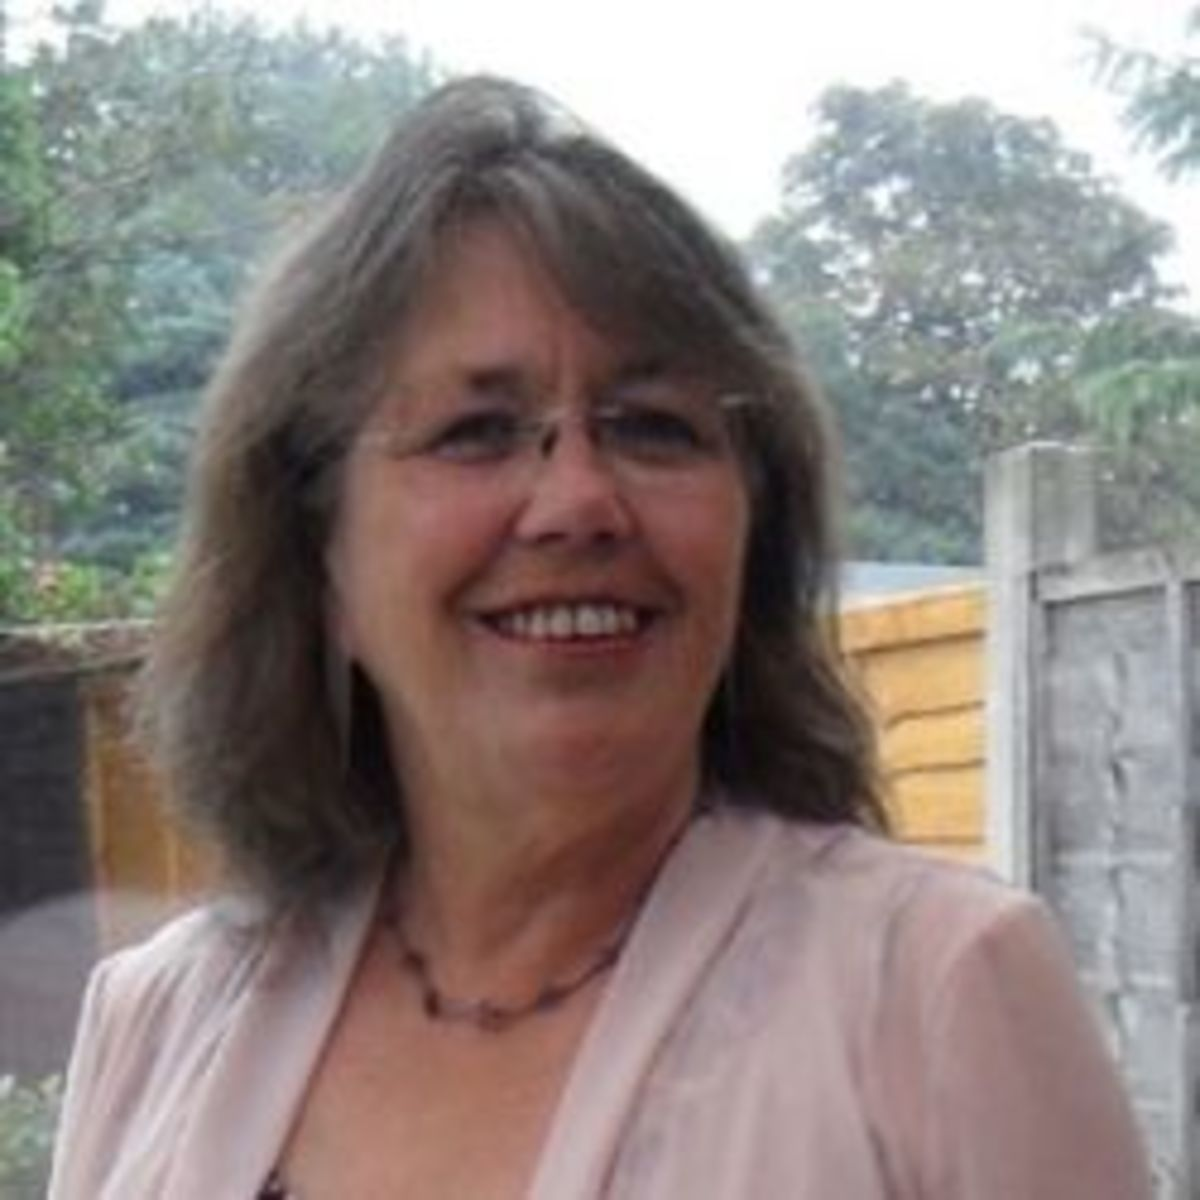 This photograph of me was taken on 30th July, 2011, almost four years after the TIA.